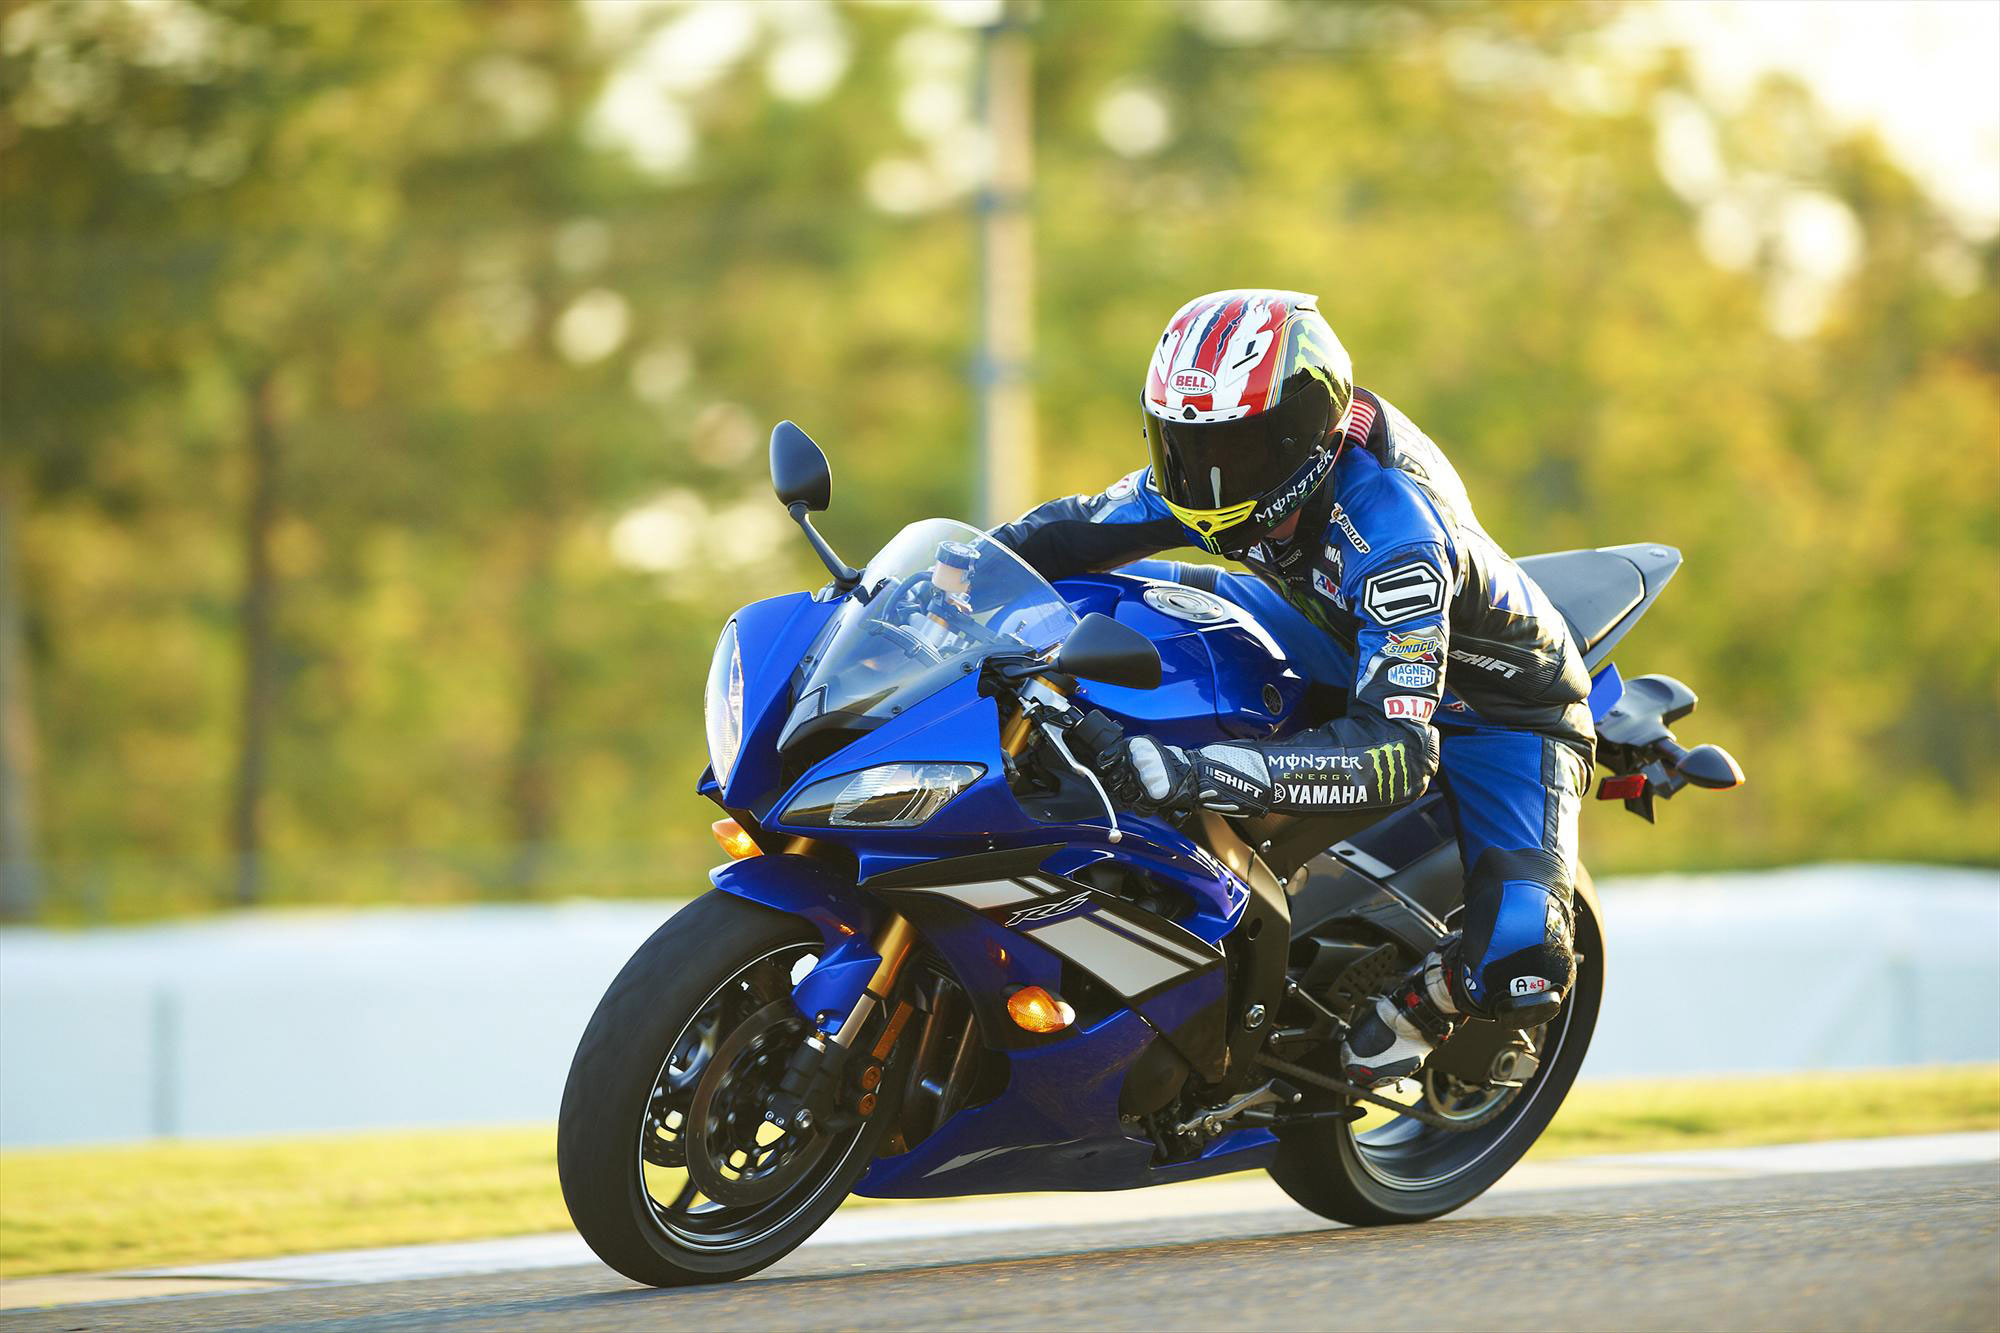 2012 yamaha yzf r6 reviews prices and specs review ebooks -  Yamaha Yzf R6 2012 12